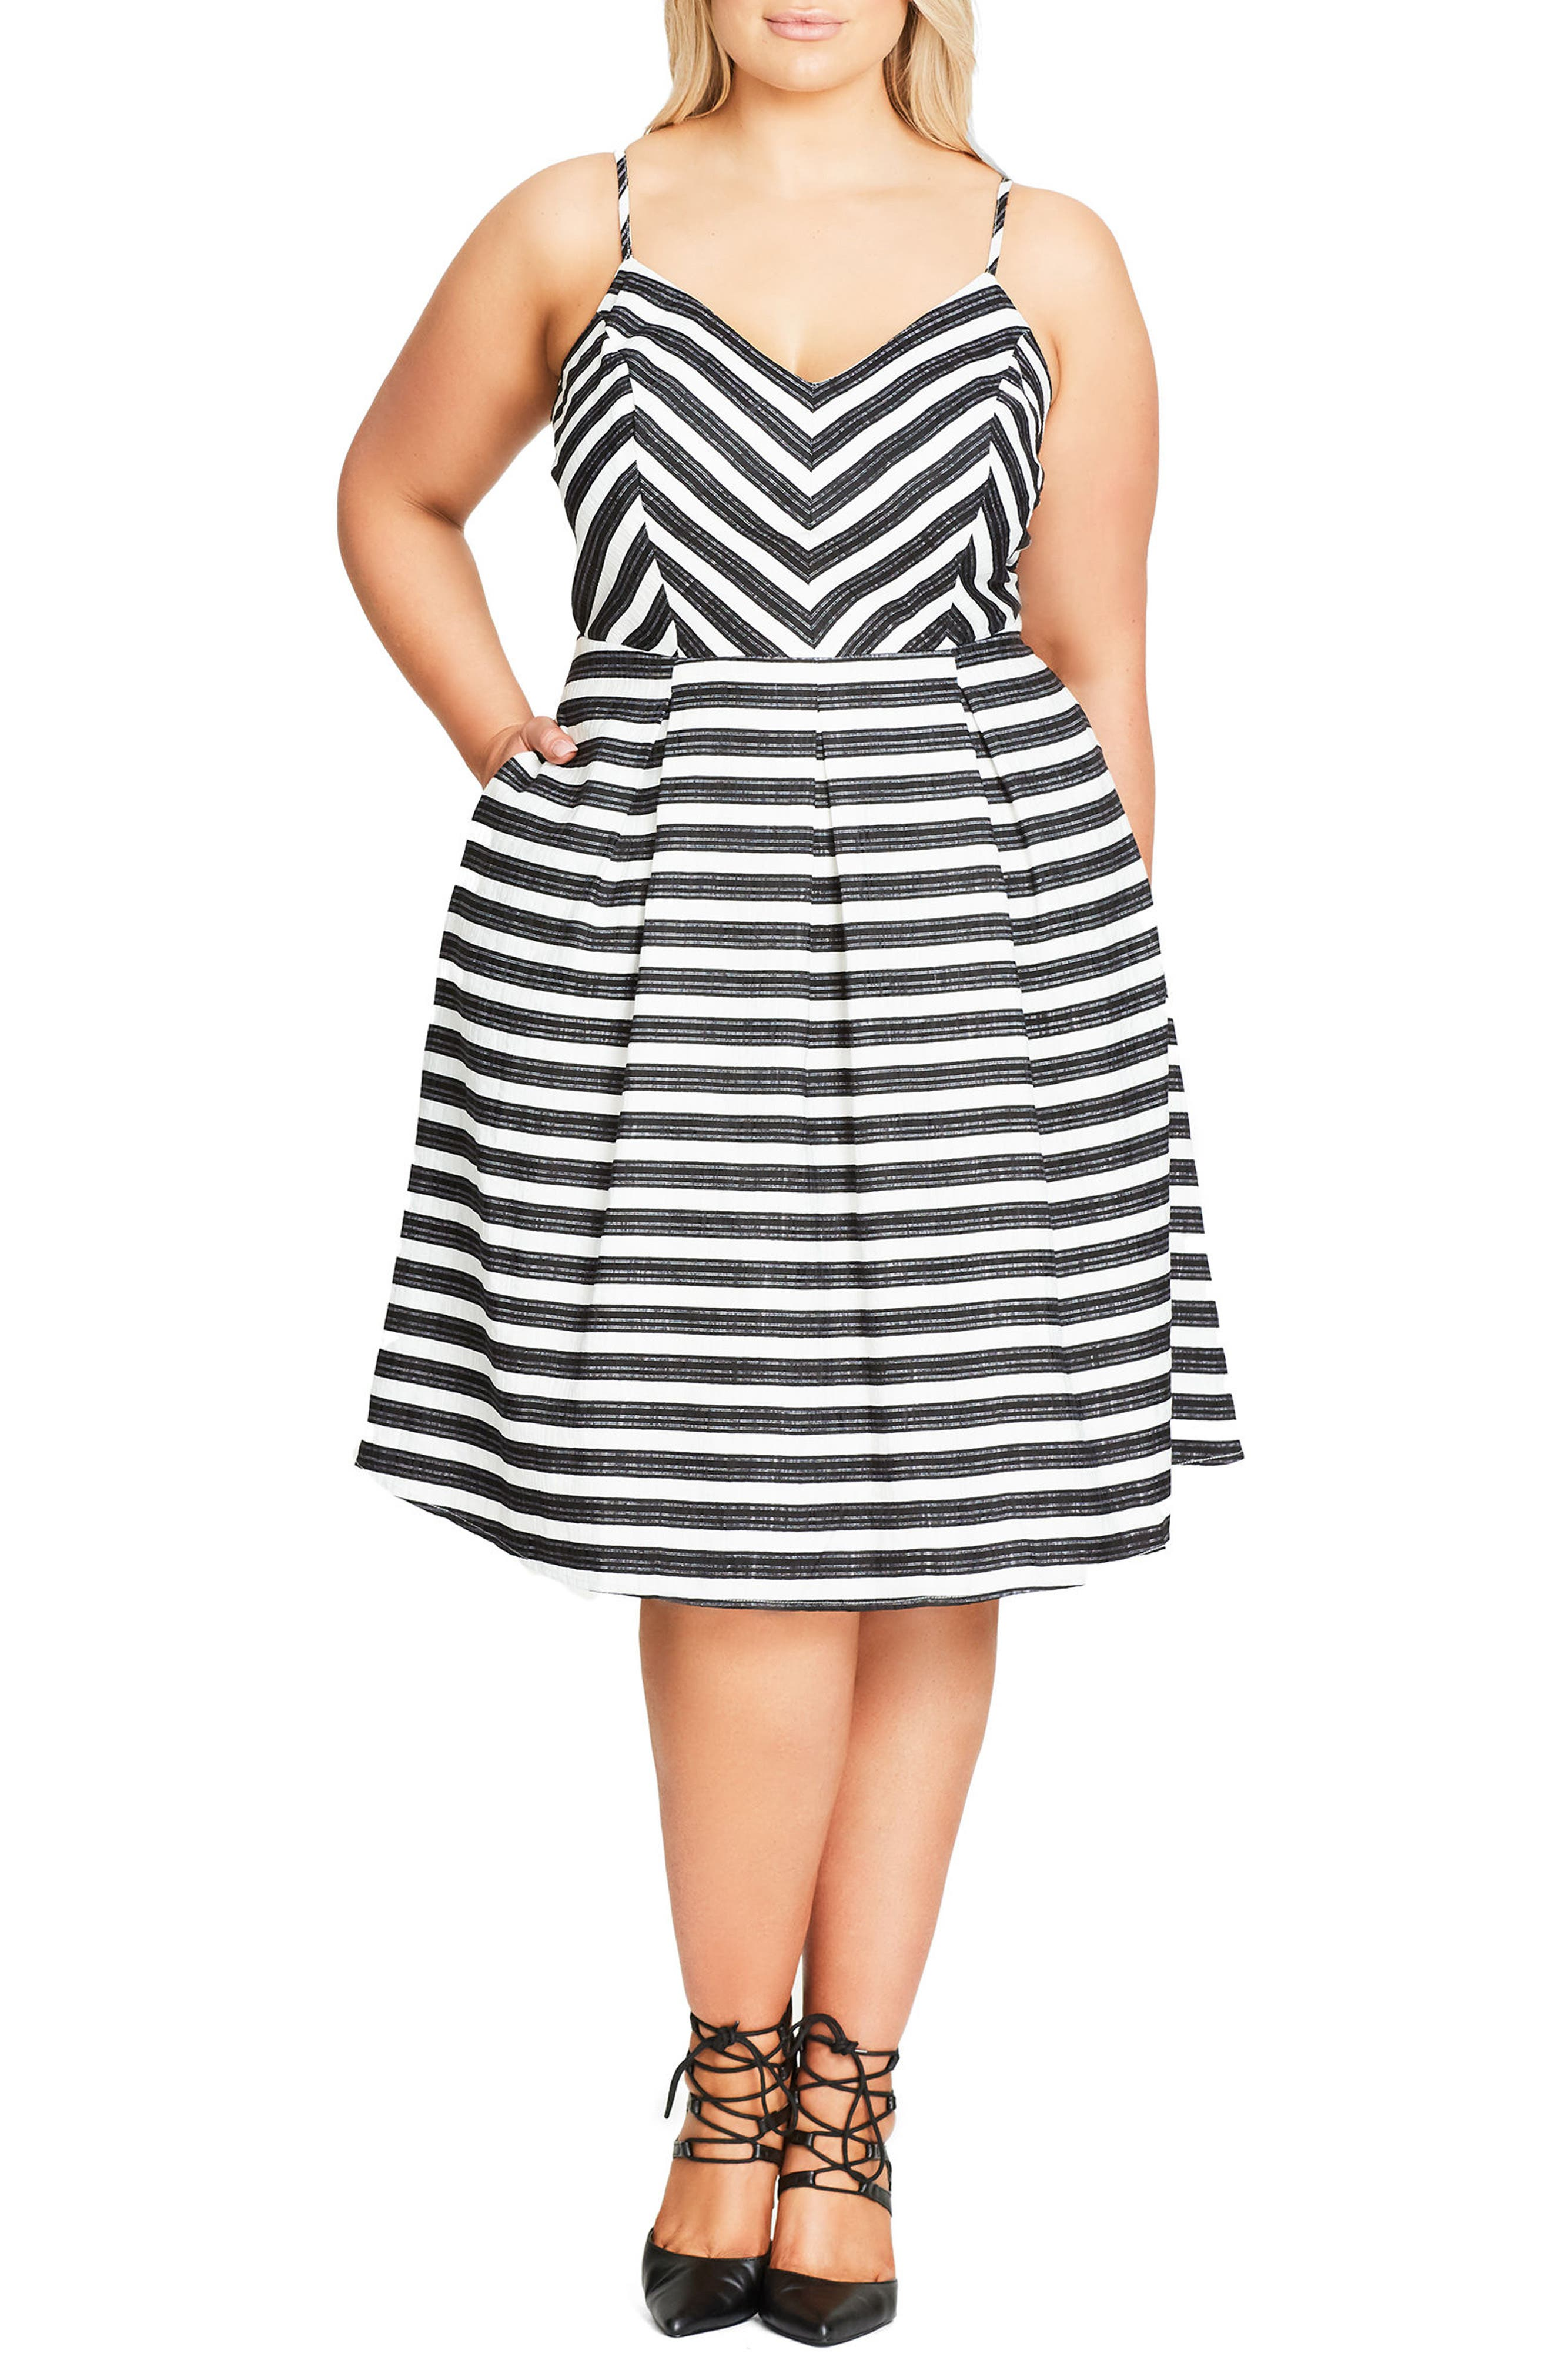 CITY CHIC Marilyn Stripe Fit & Flare Sundress